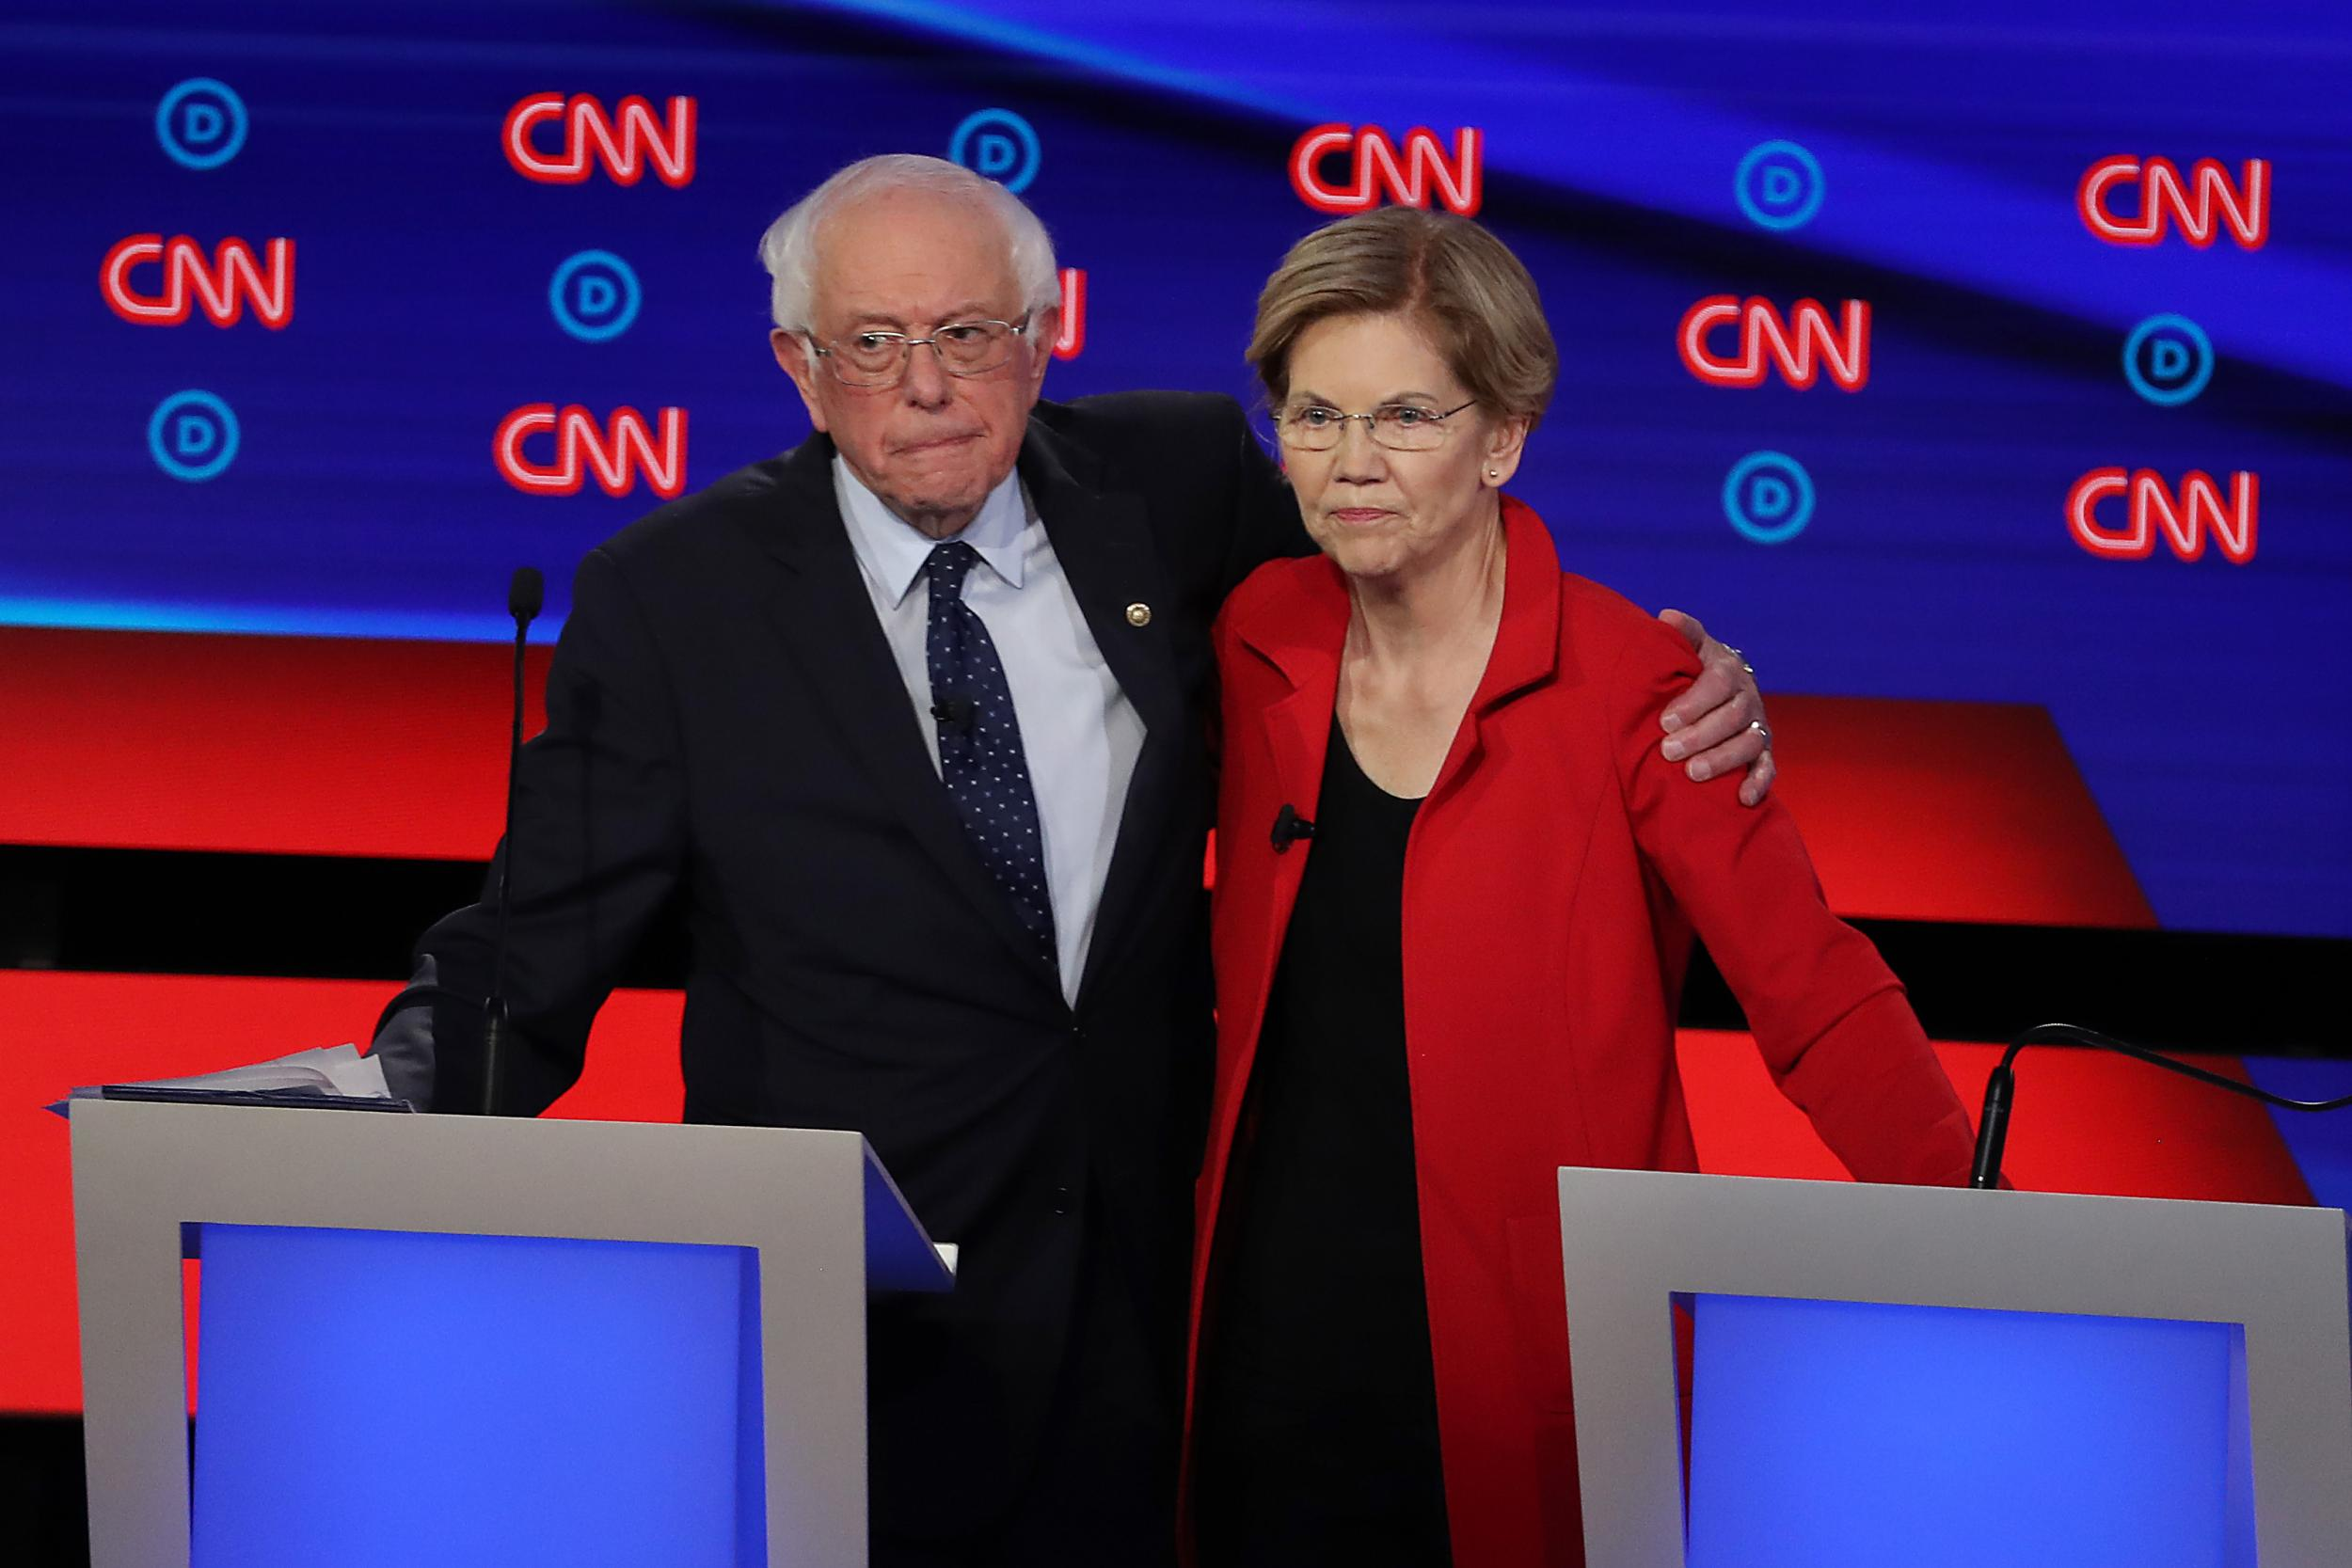 Bernie Sanders and Elizabeth Warren are not 'the same'. One of them thinks it's OK to buy elections